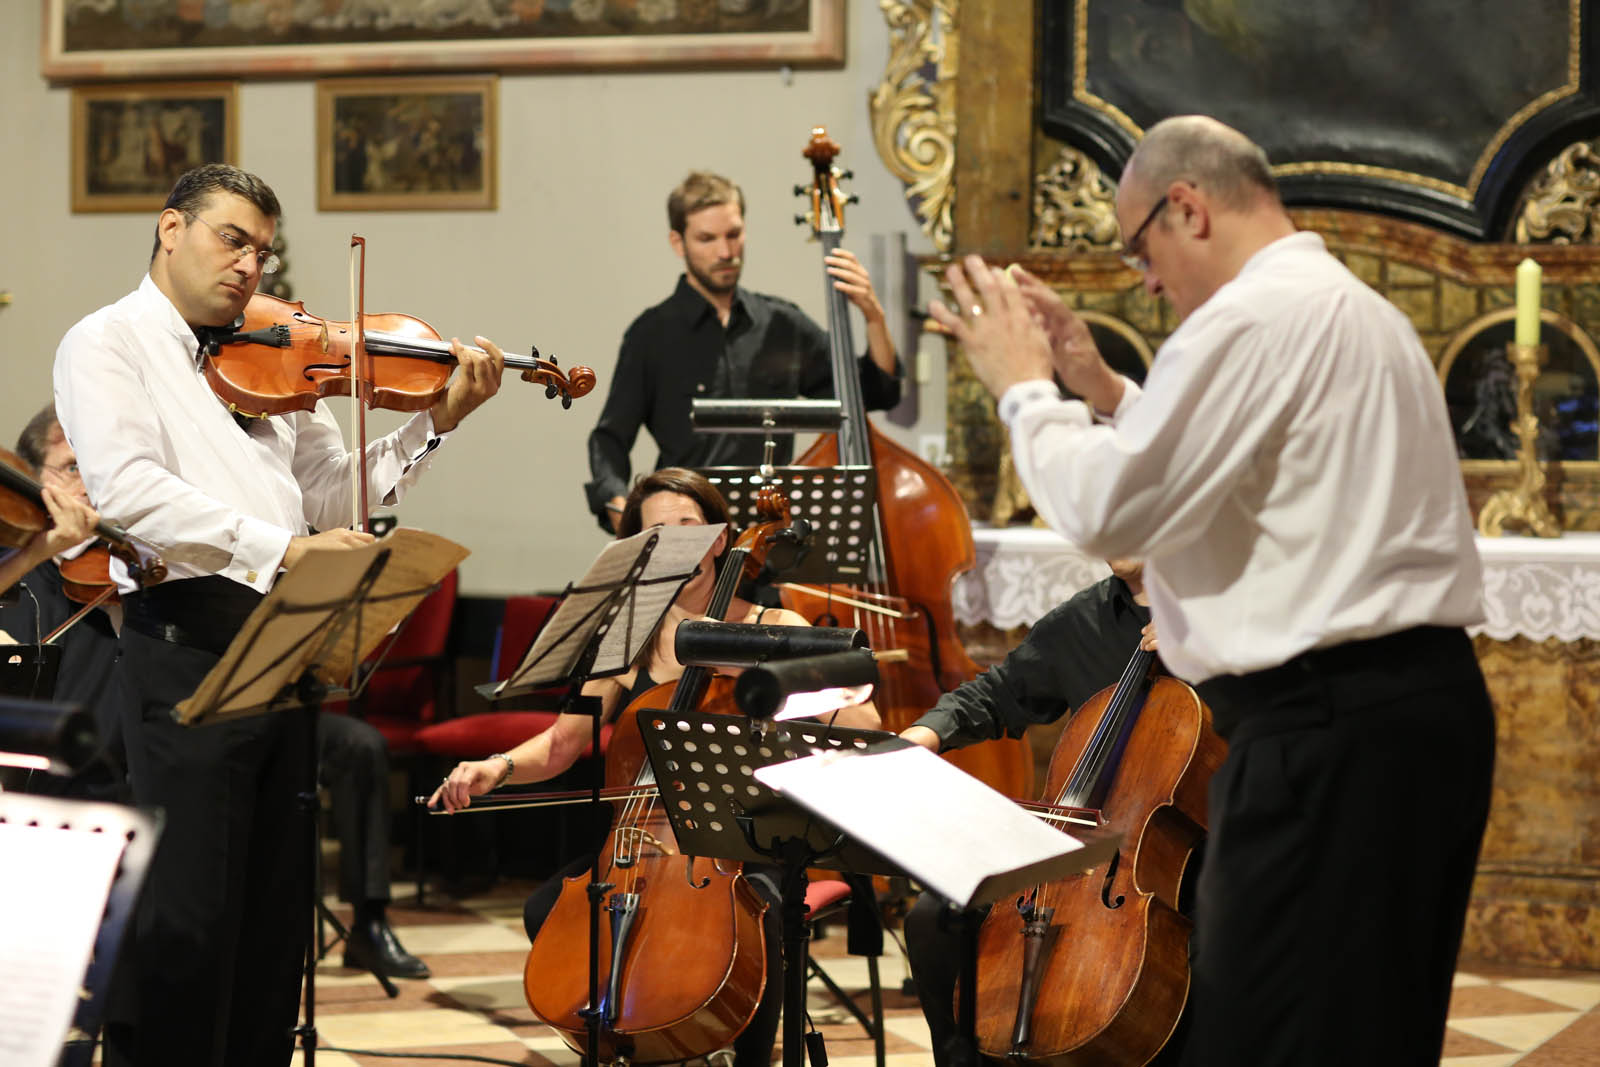 Mozart Concertante in Osijek 2.07.2014